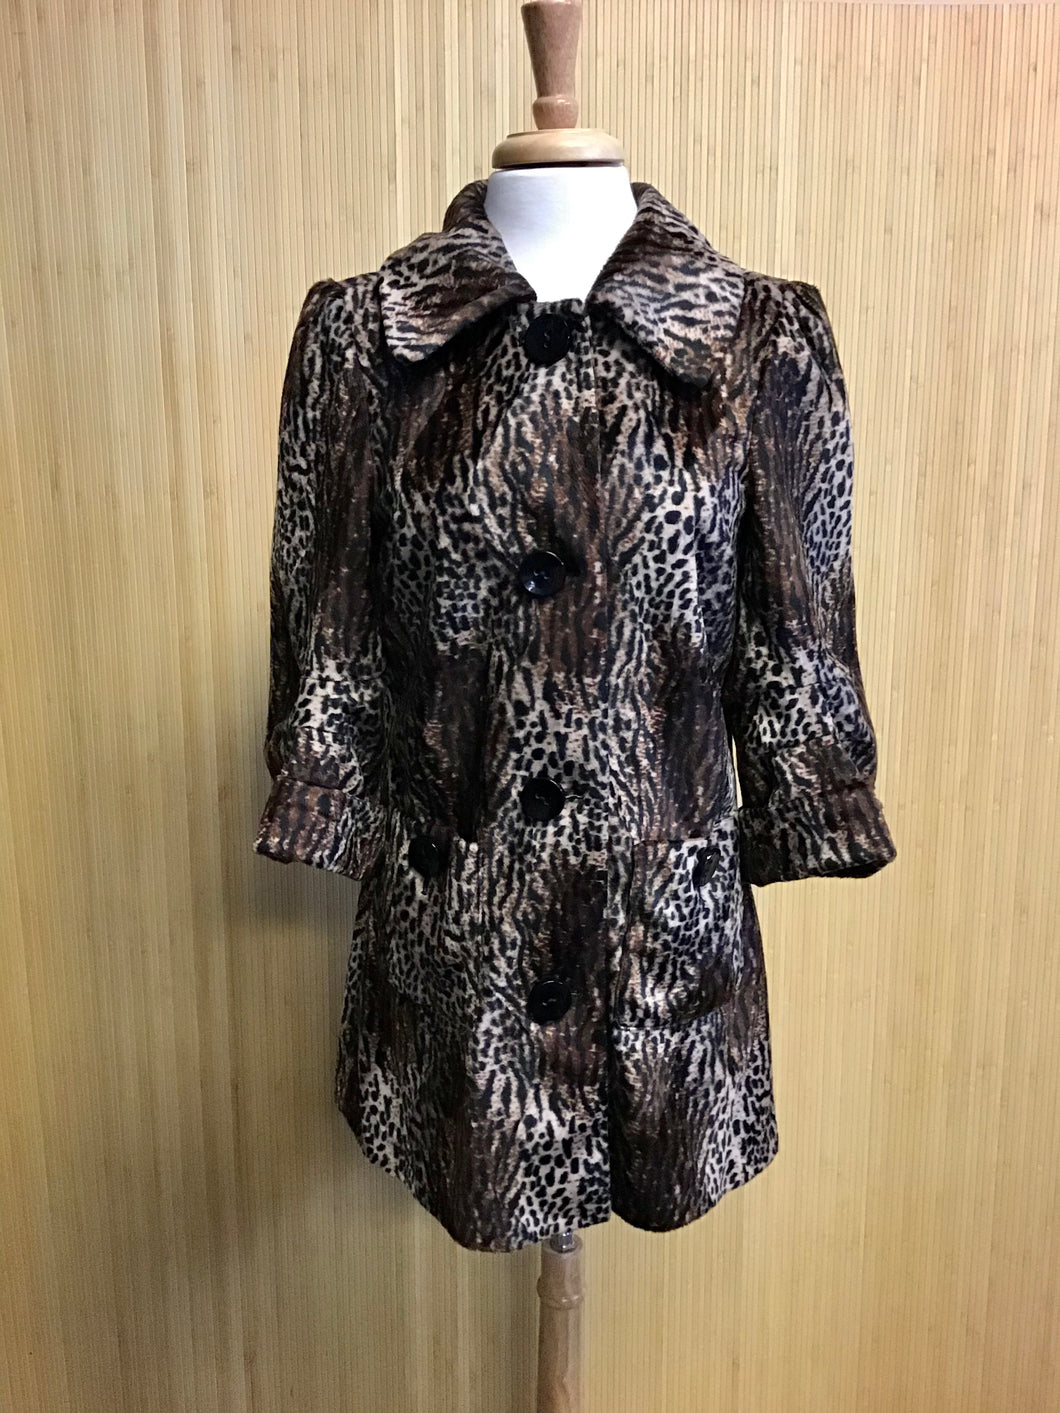 Faux Fur Guess Jacket (L)